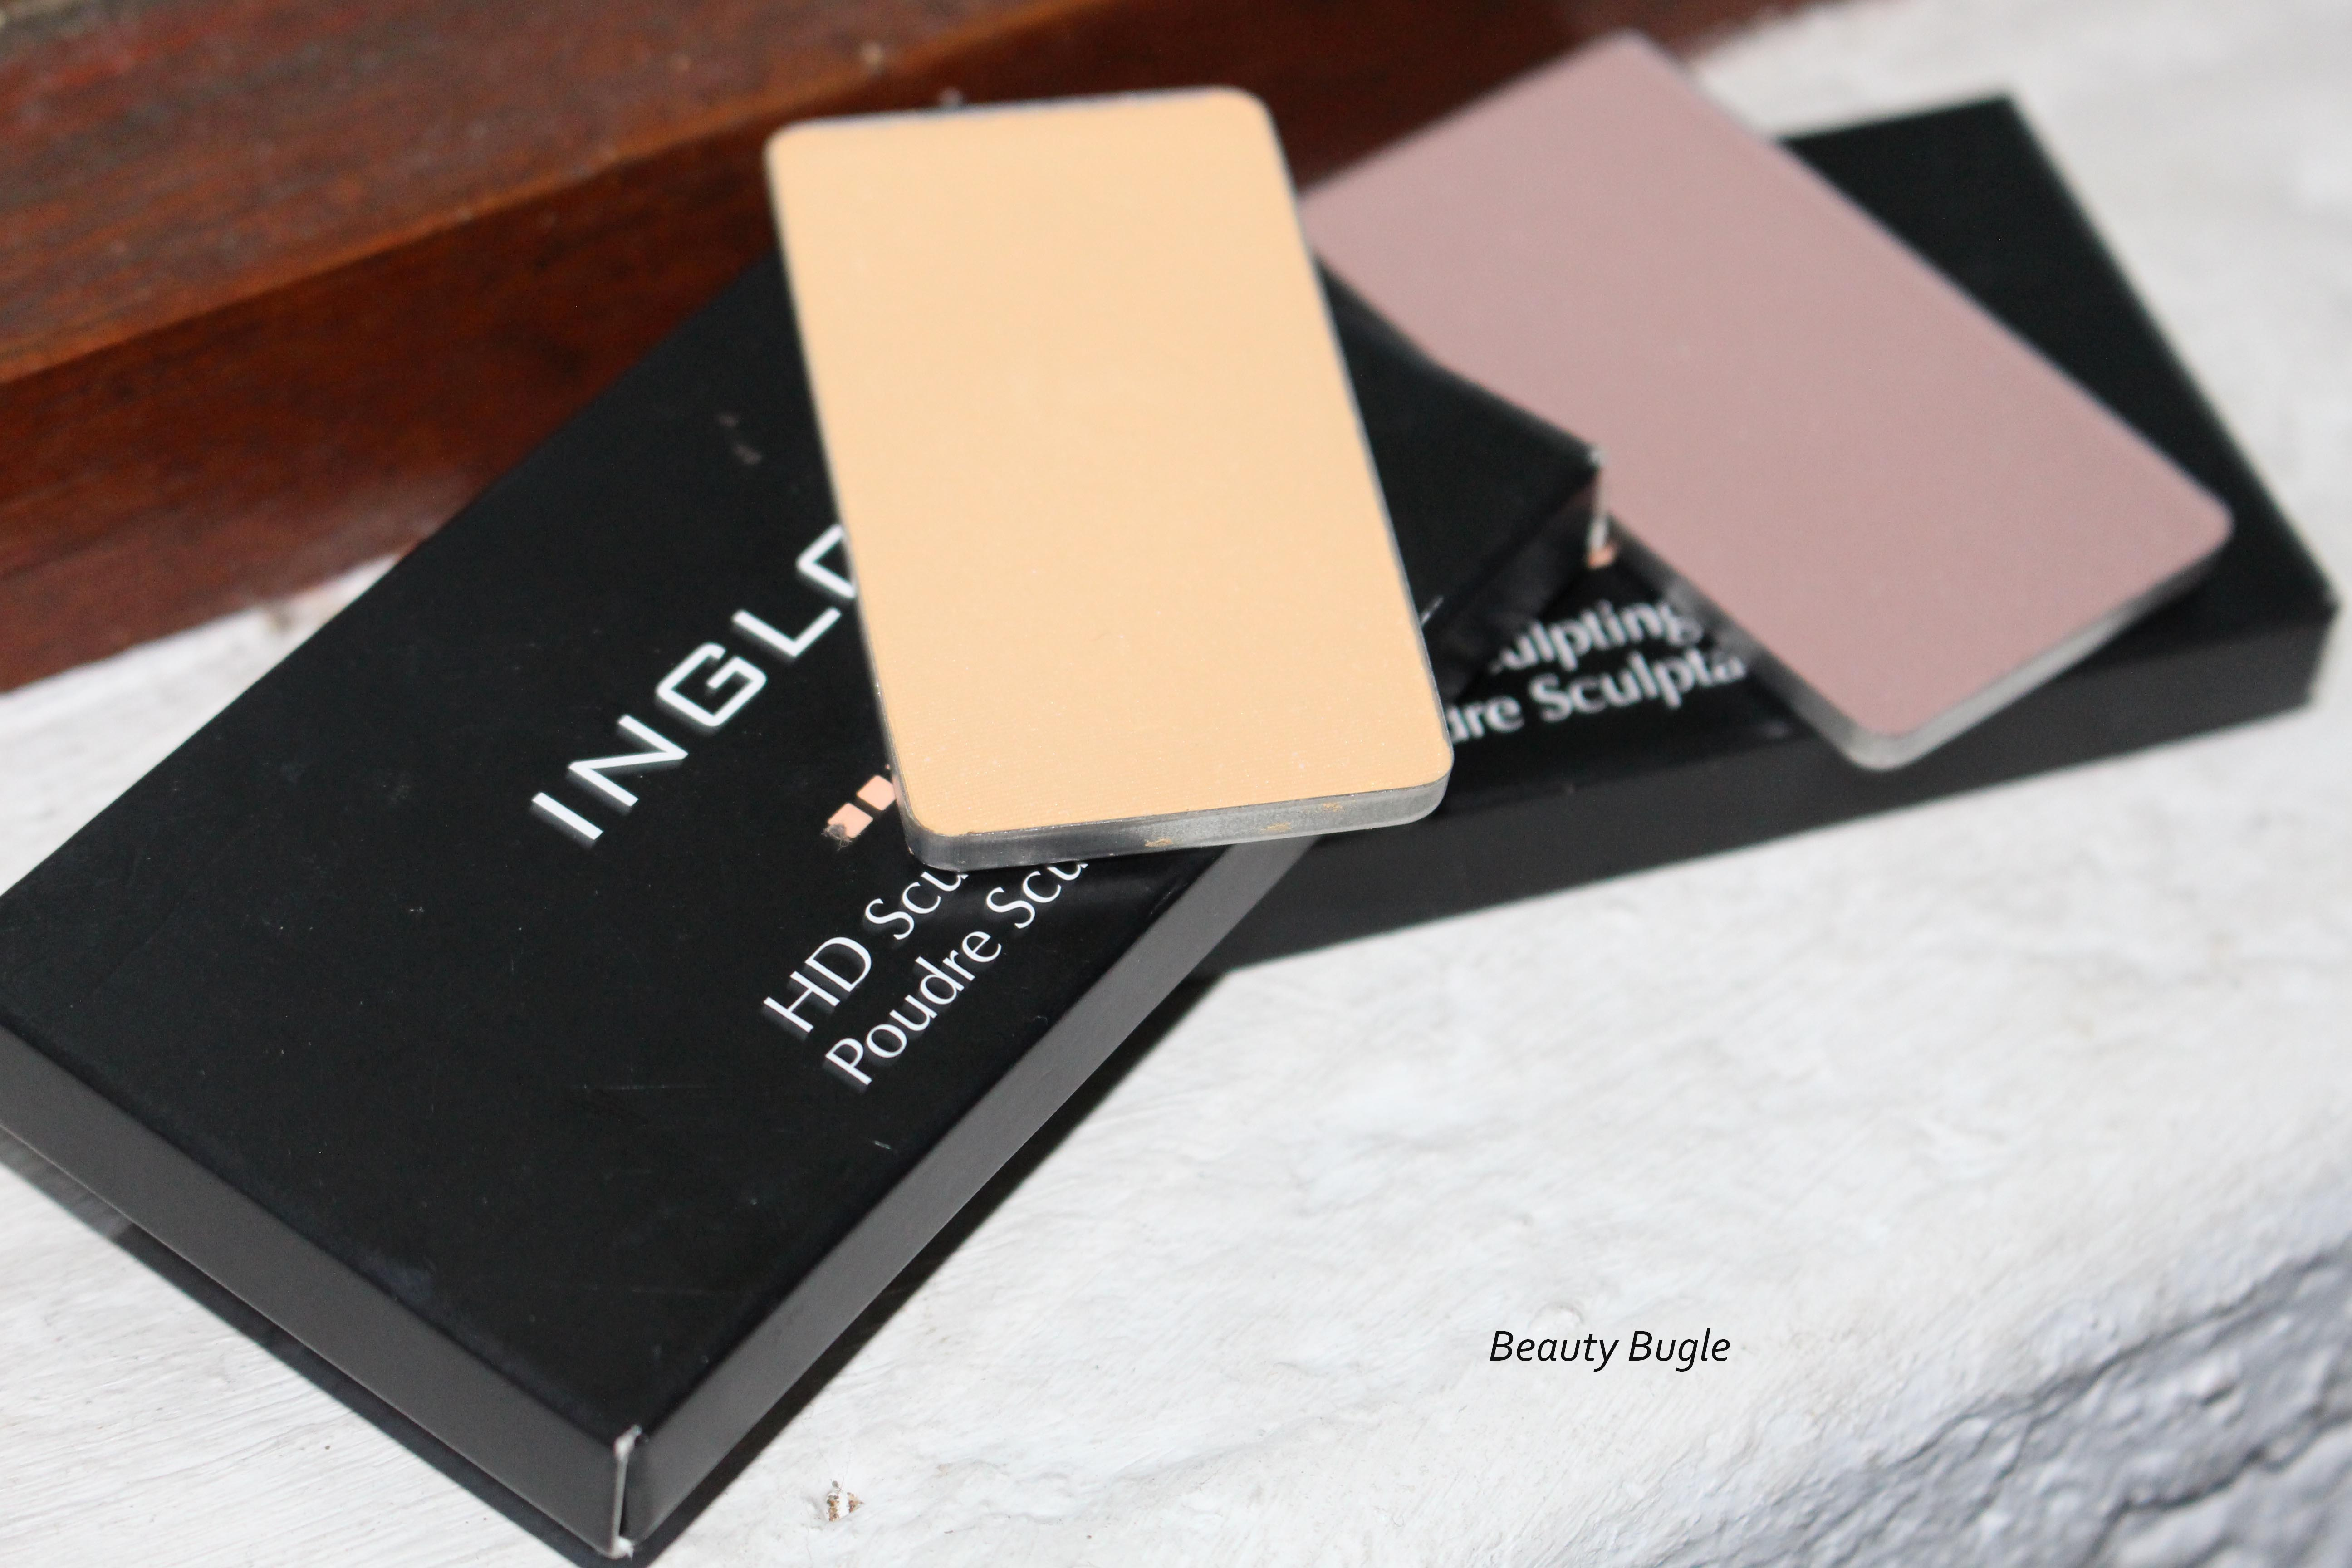 Inglot Pro Sculpting HD powders in 501 and 504